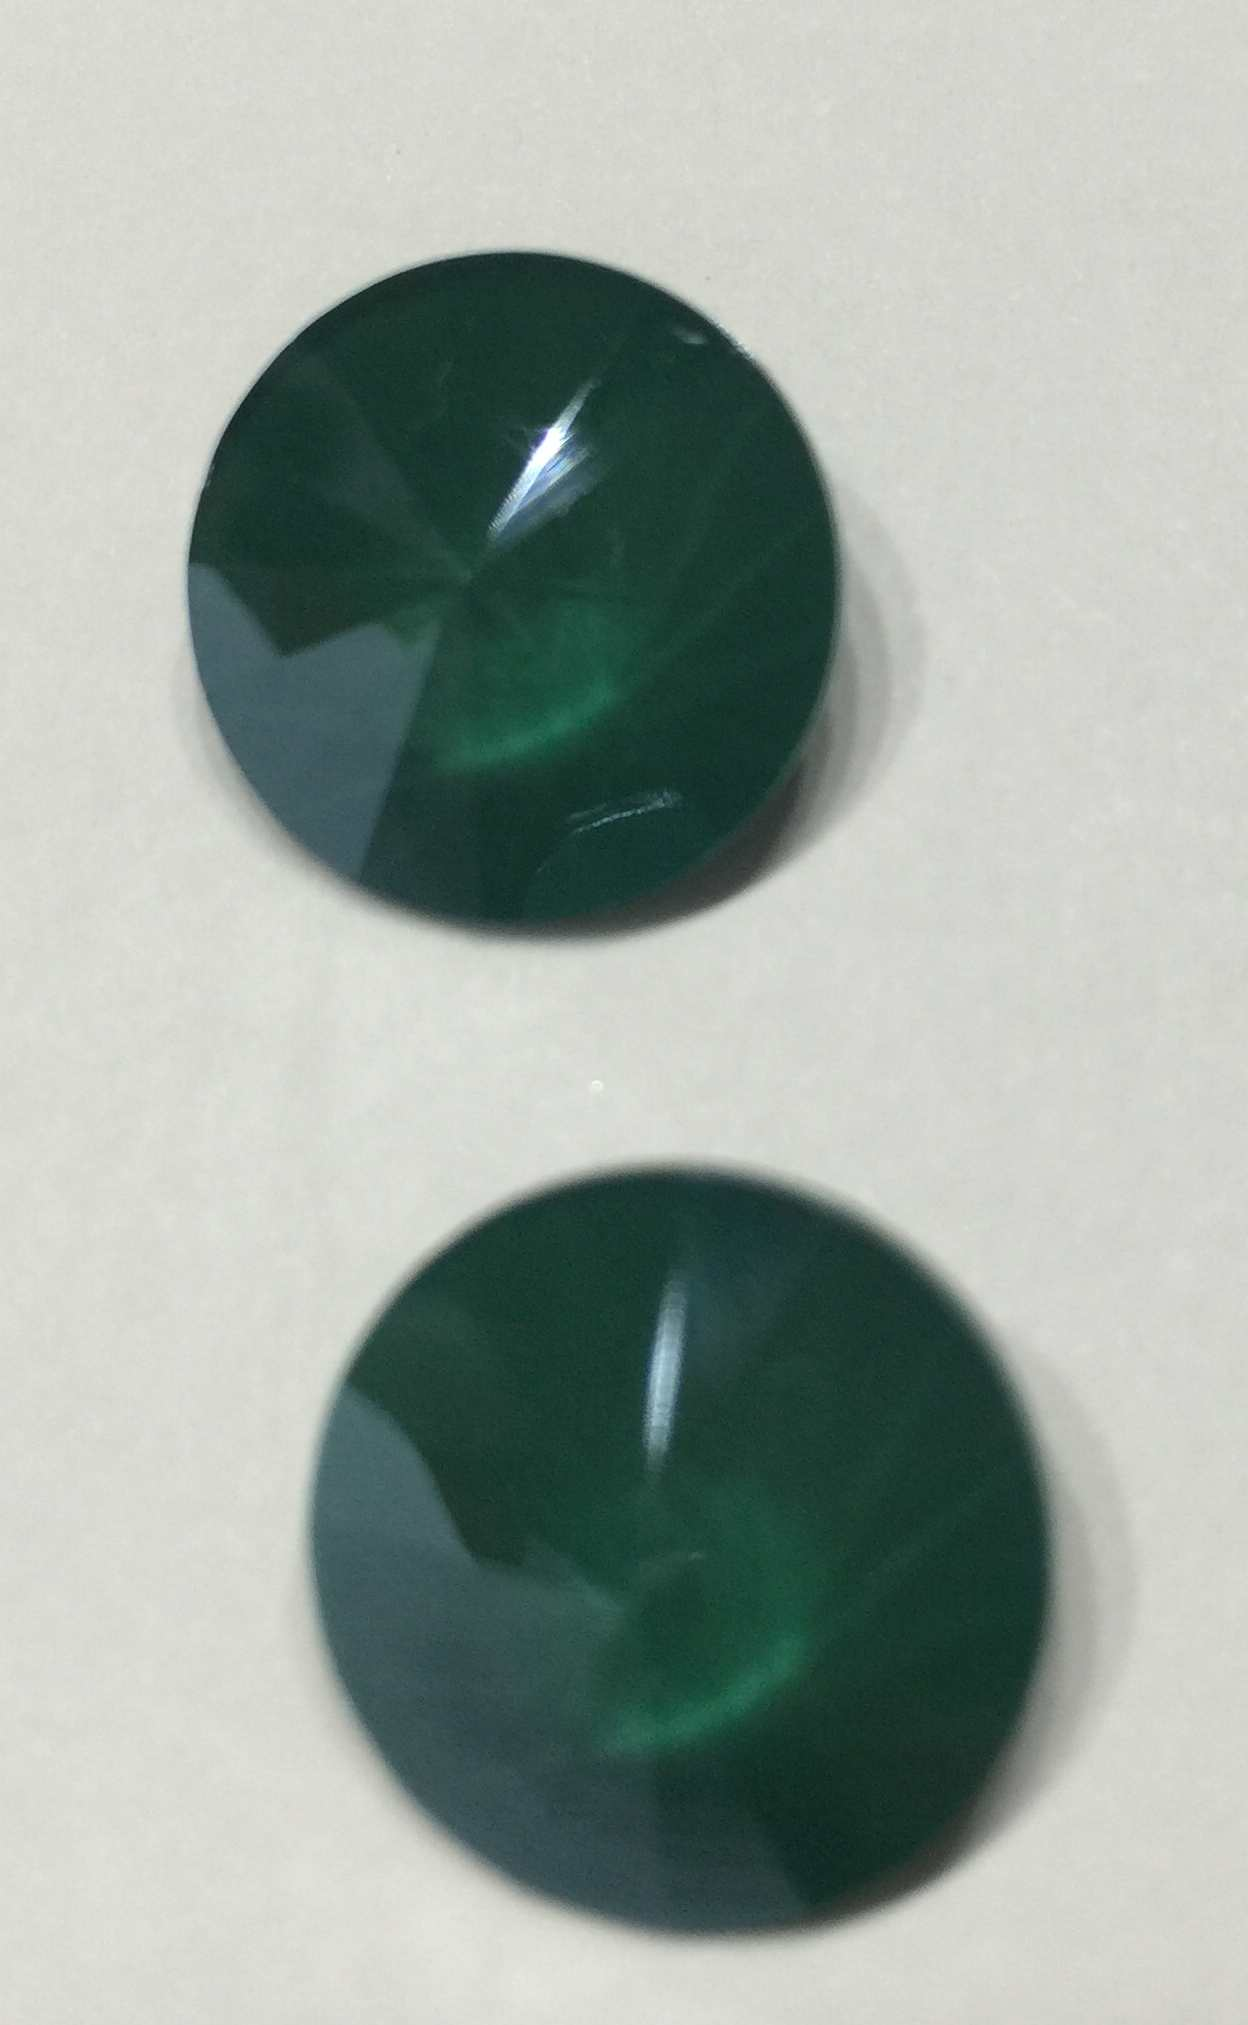 1122 - Rivoli - Cr Royal Green Shine (001) - 14mm